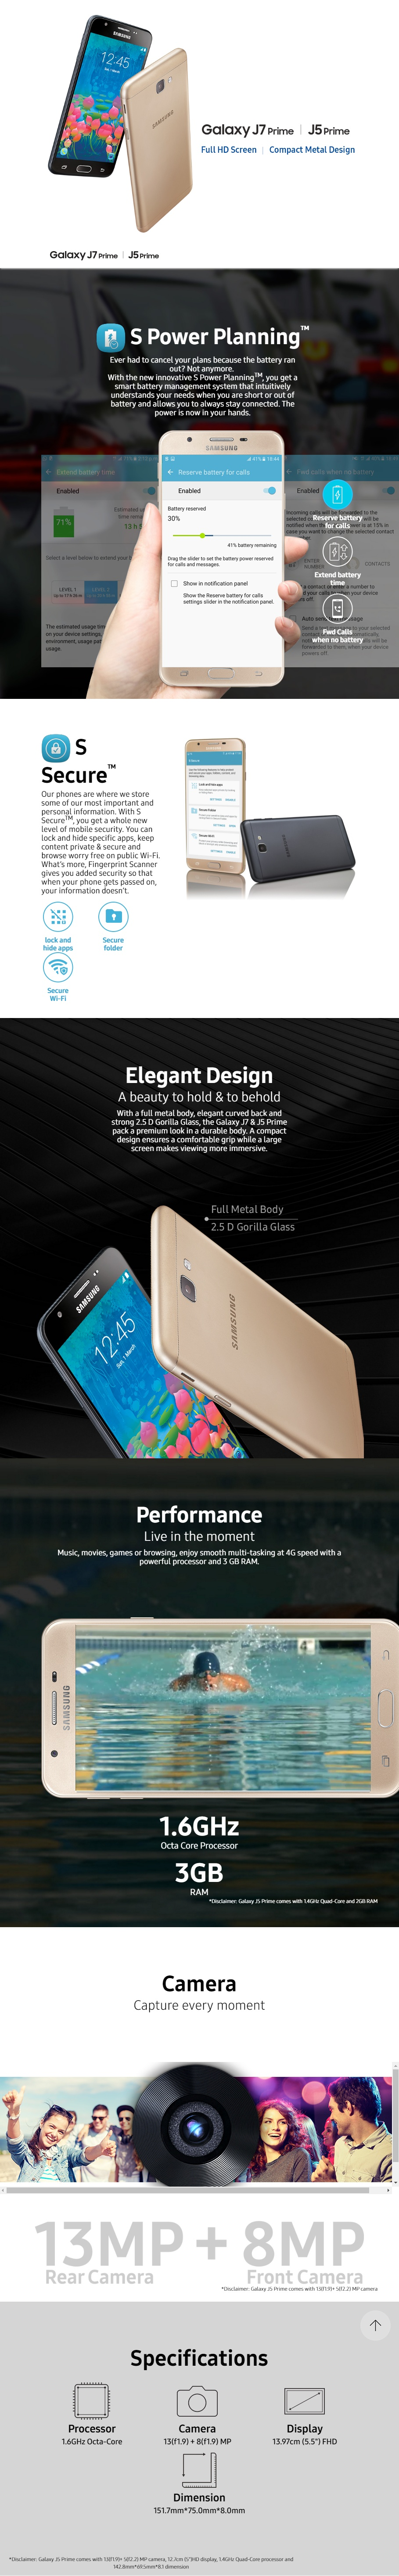 Samsung Galaxy J7 Prime Export Set Lazada Singapore Sm G610f Gold 16gb Specifications Of